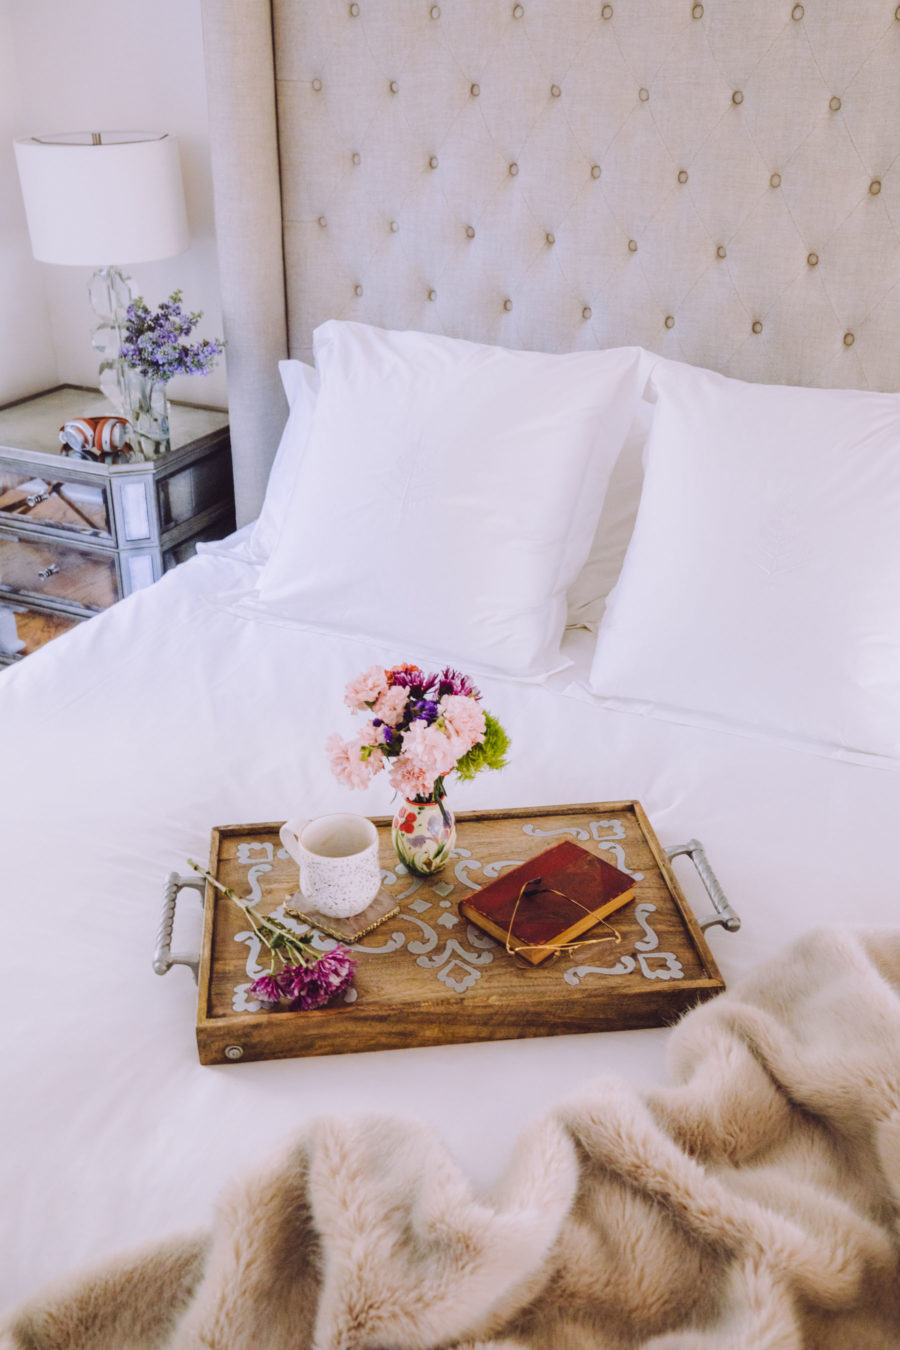 four seasons at home bedding review by blogger jessica wang // Notjessfashion.com